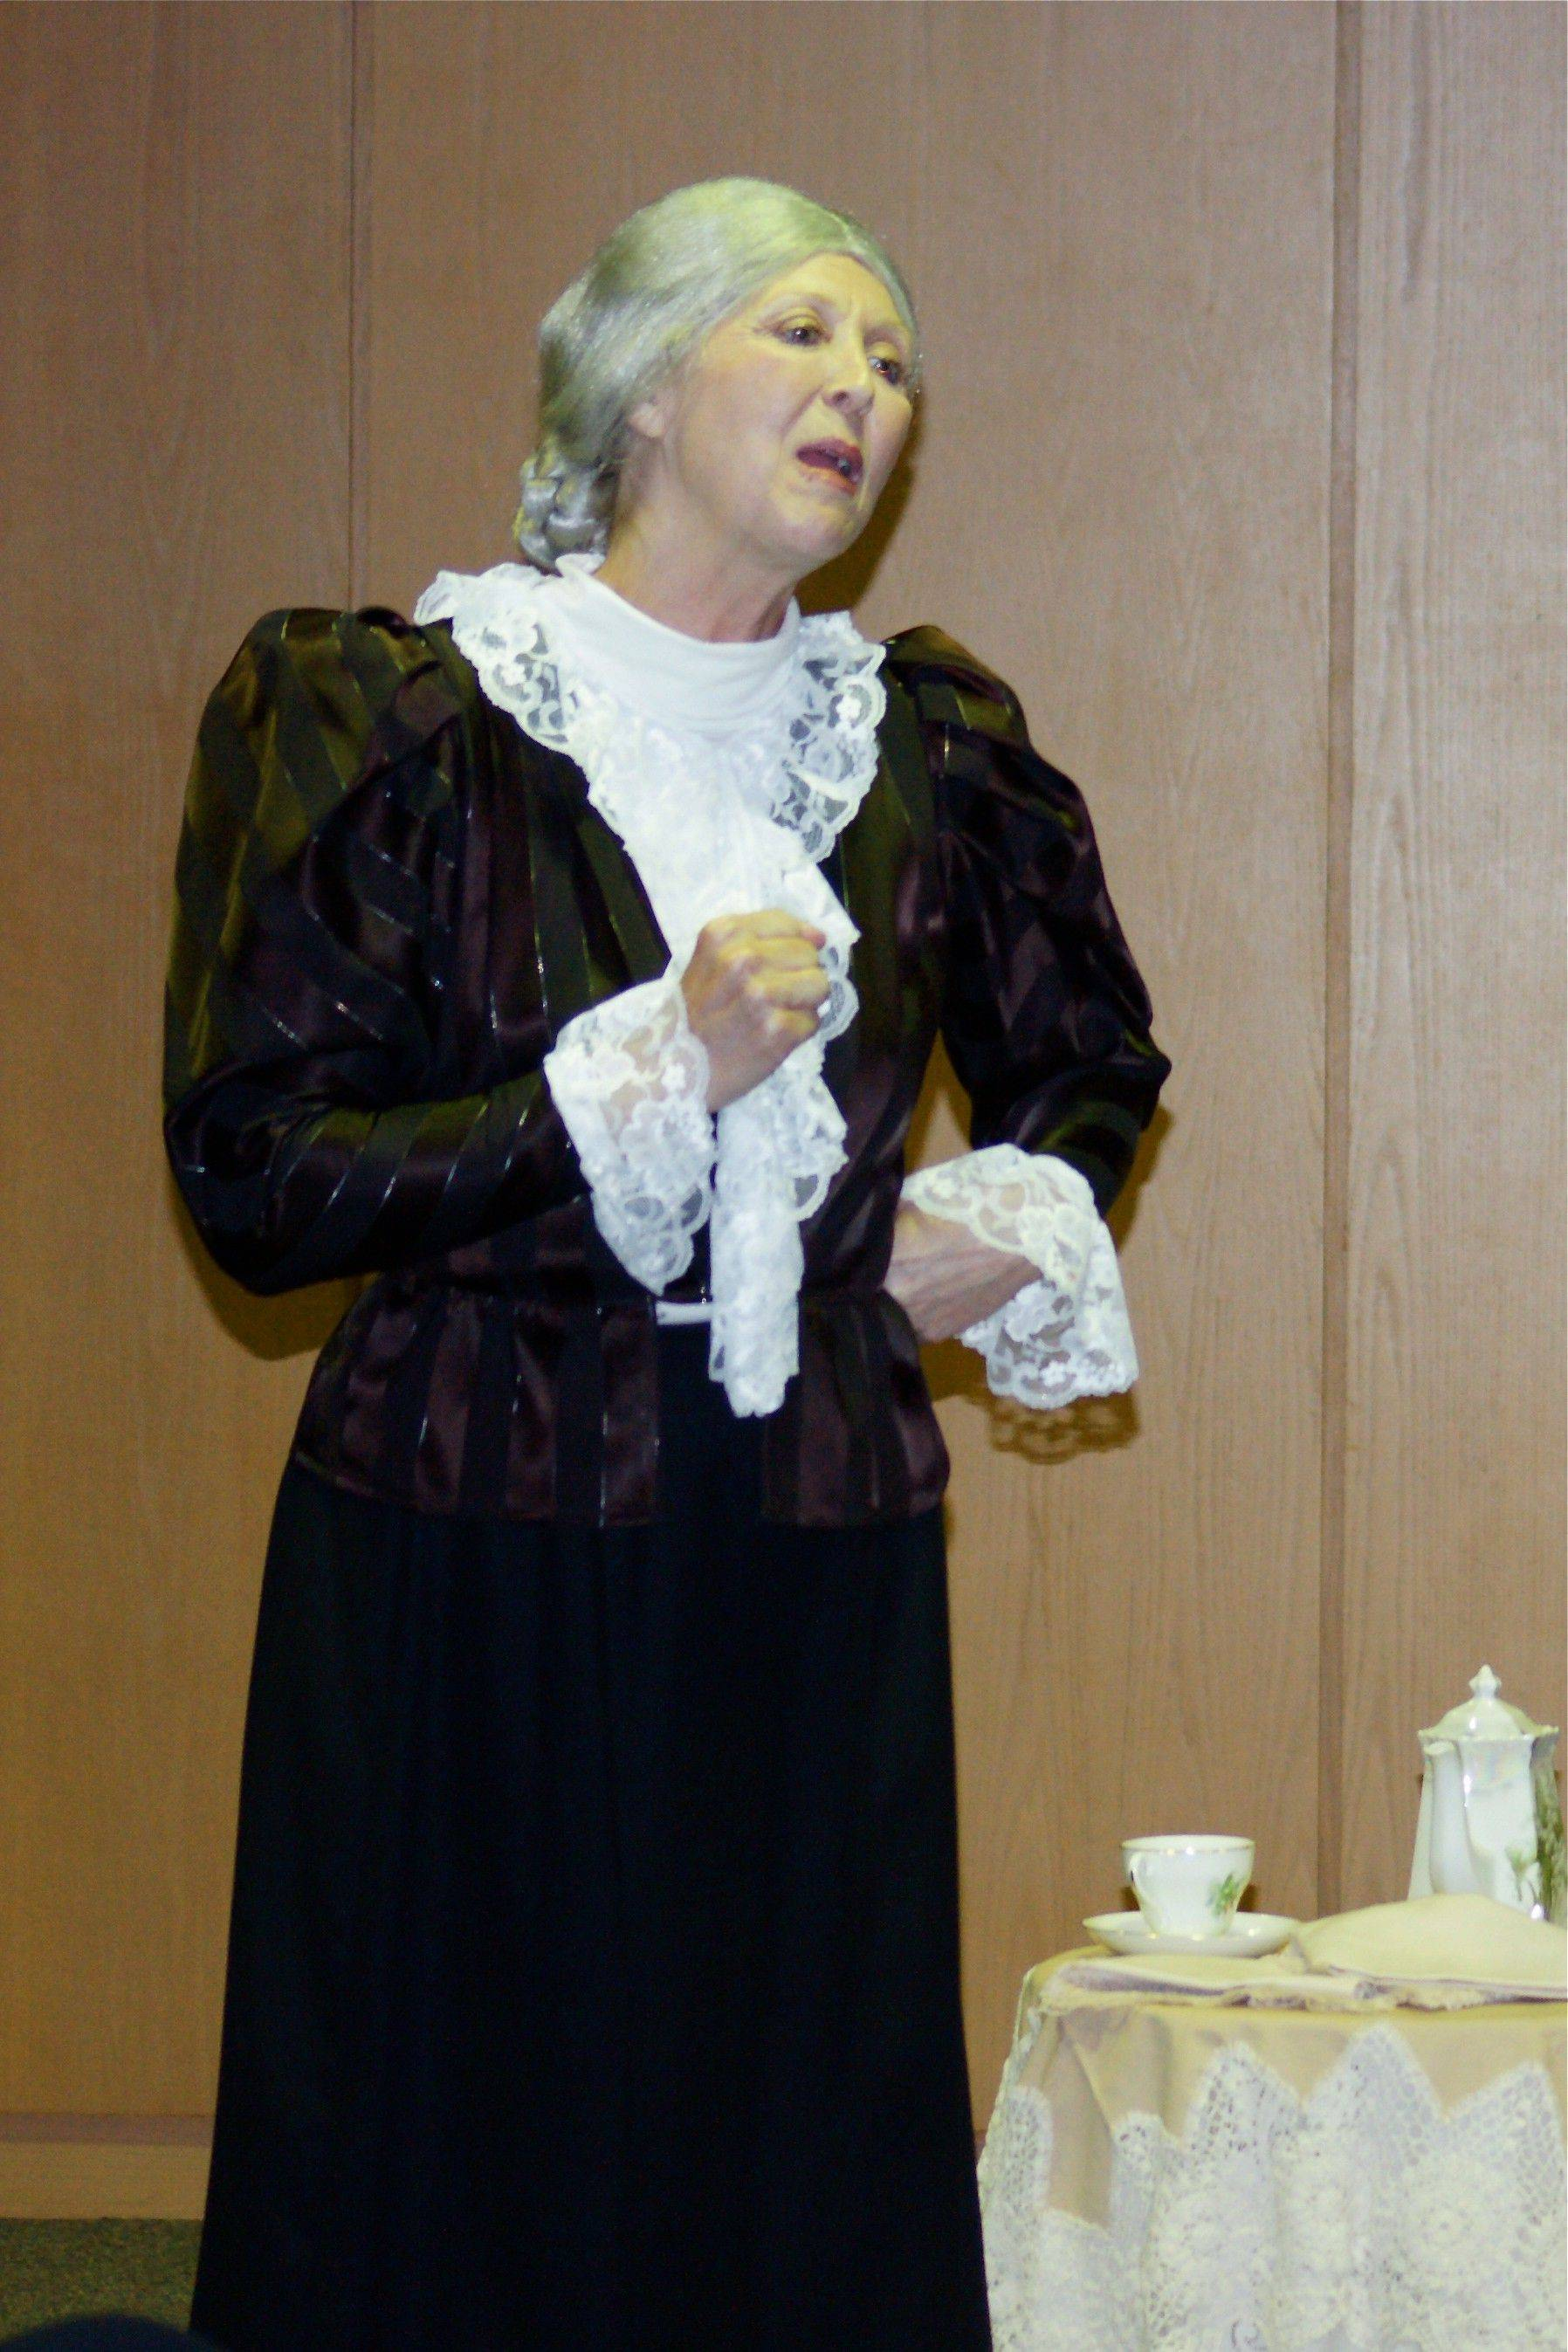 Former teacher Lynn Rymarz portrays Susan B. Anthony, the civil rights leader who helped women win the right to vote.